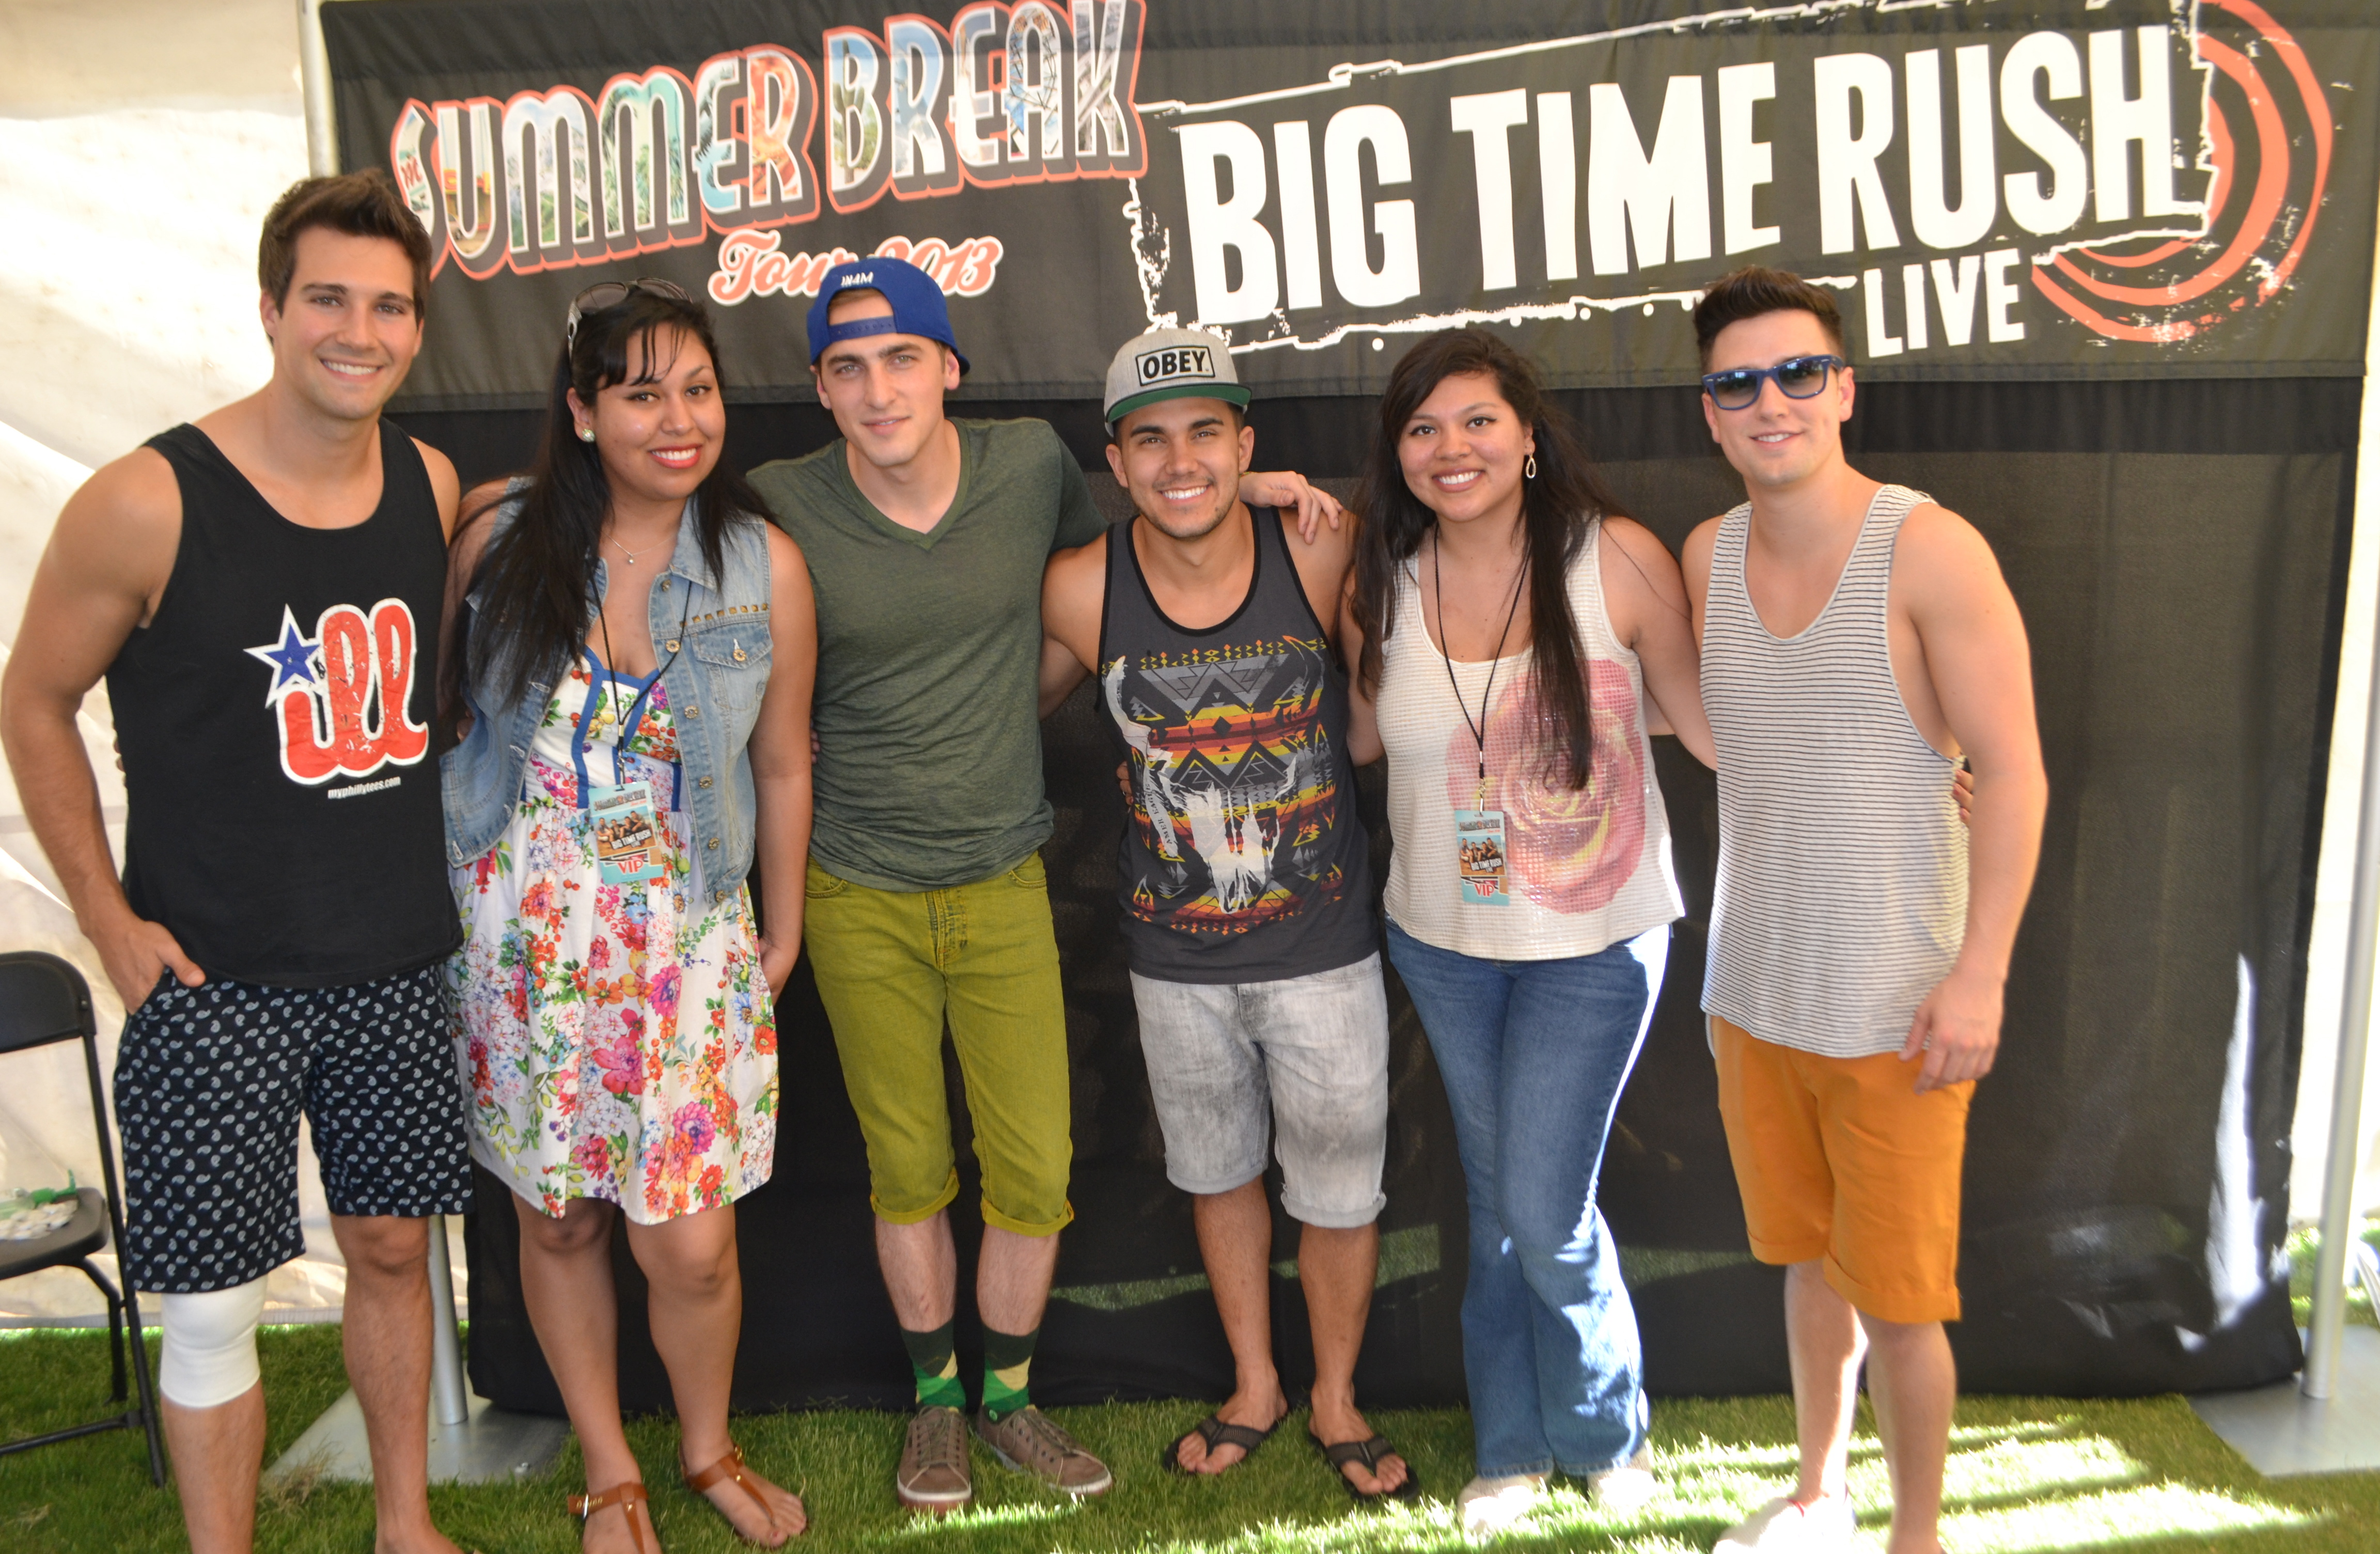 Live laugh love big time rush in tucson 62613 bigtimerush i love big time rush how i met your mother glee anything disney zachary levi and laughing m4hsunfo